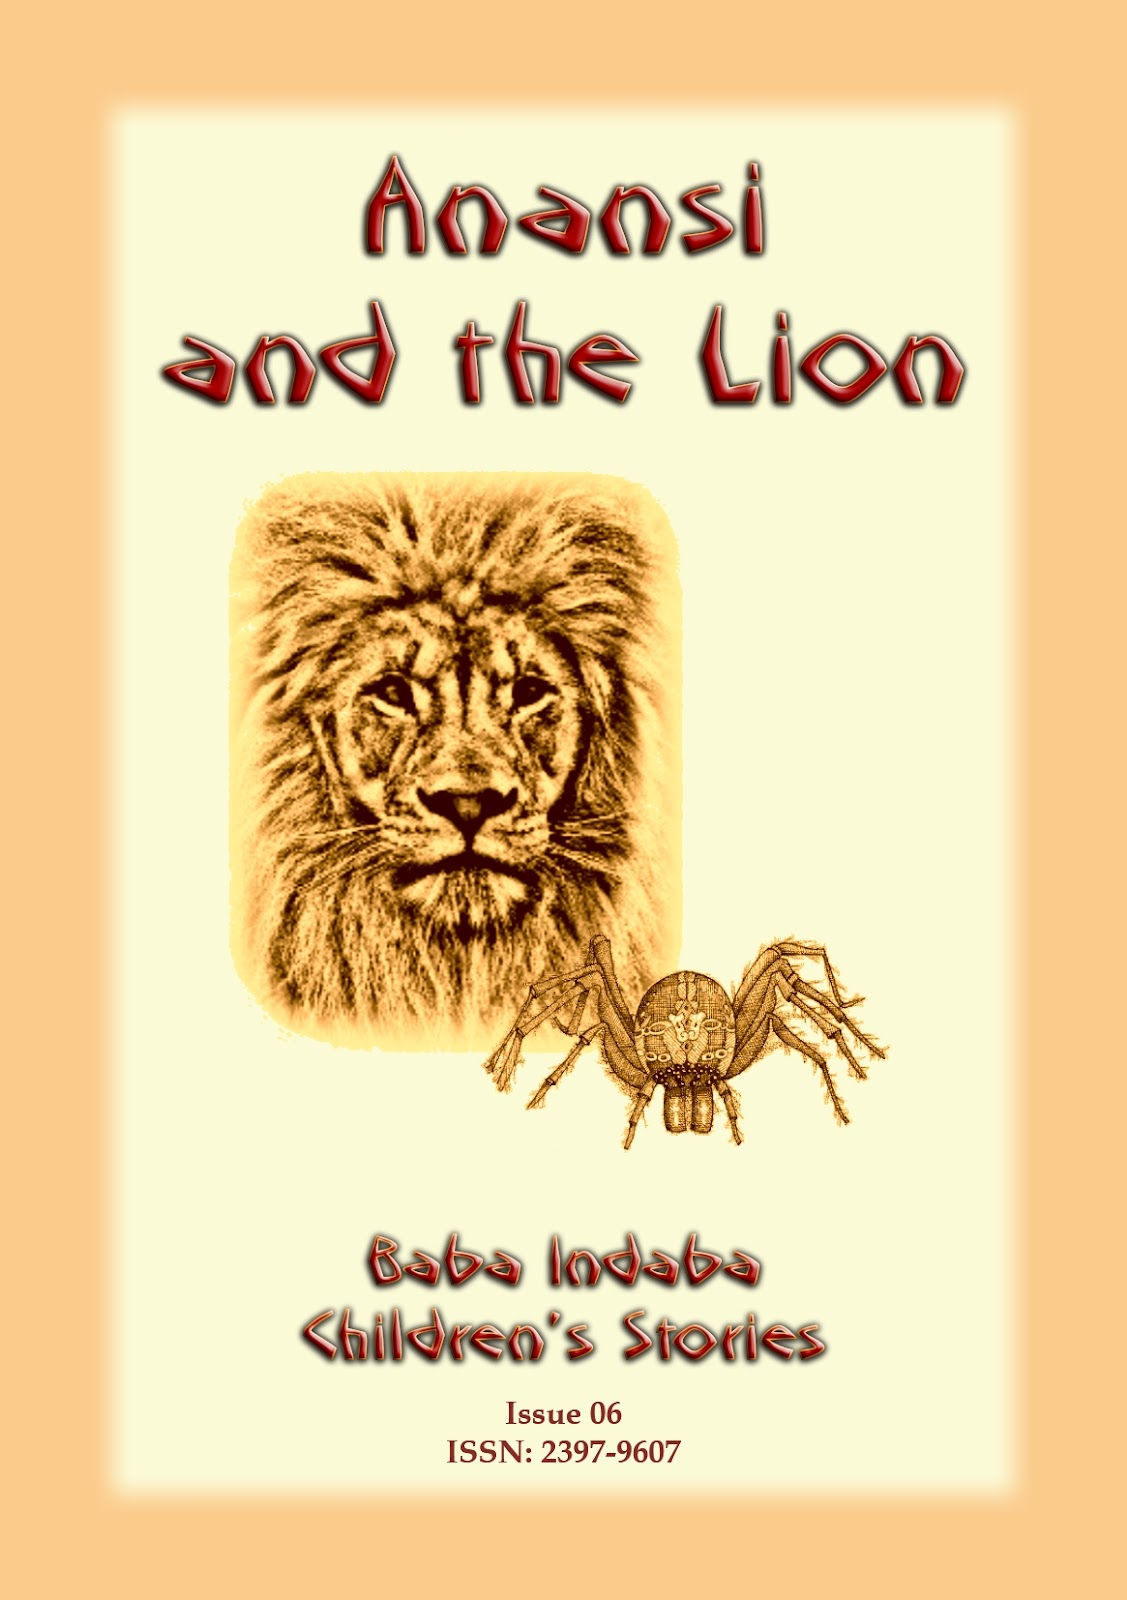 06 Anansi and the Lion.jpg